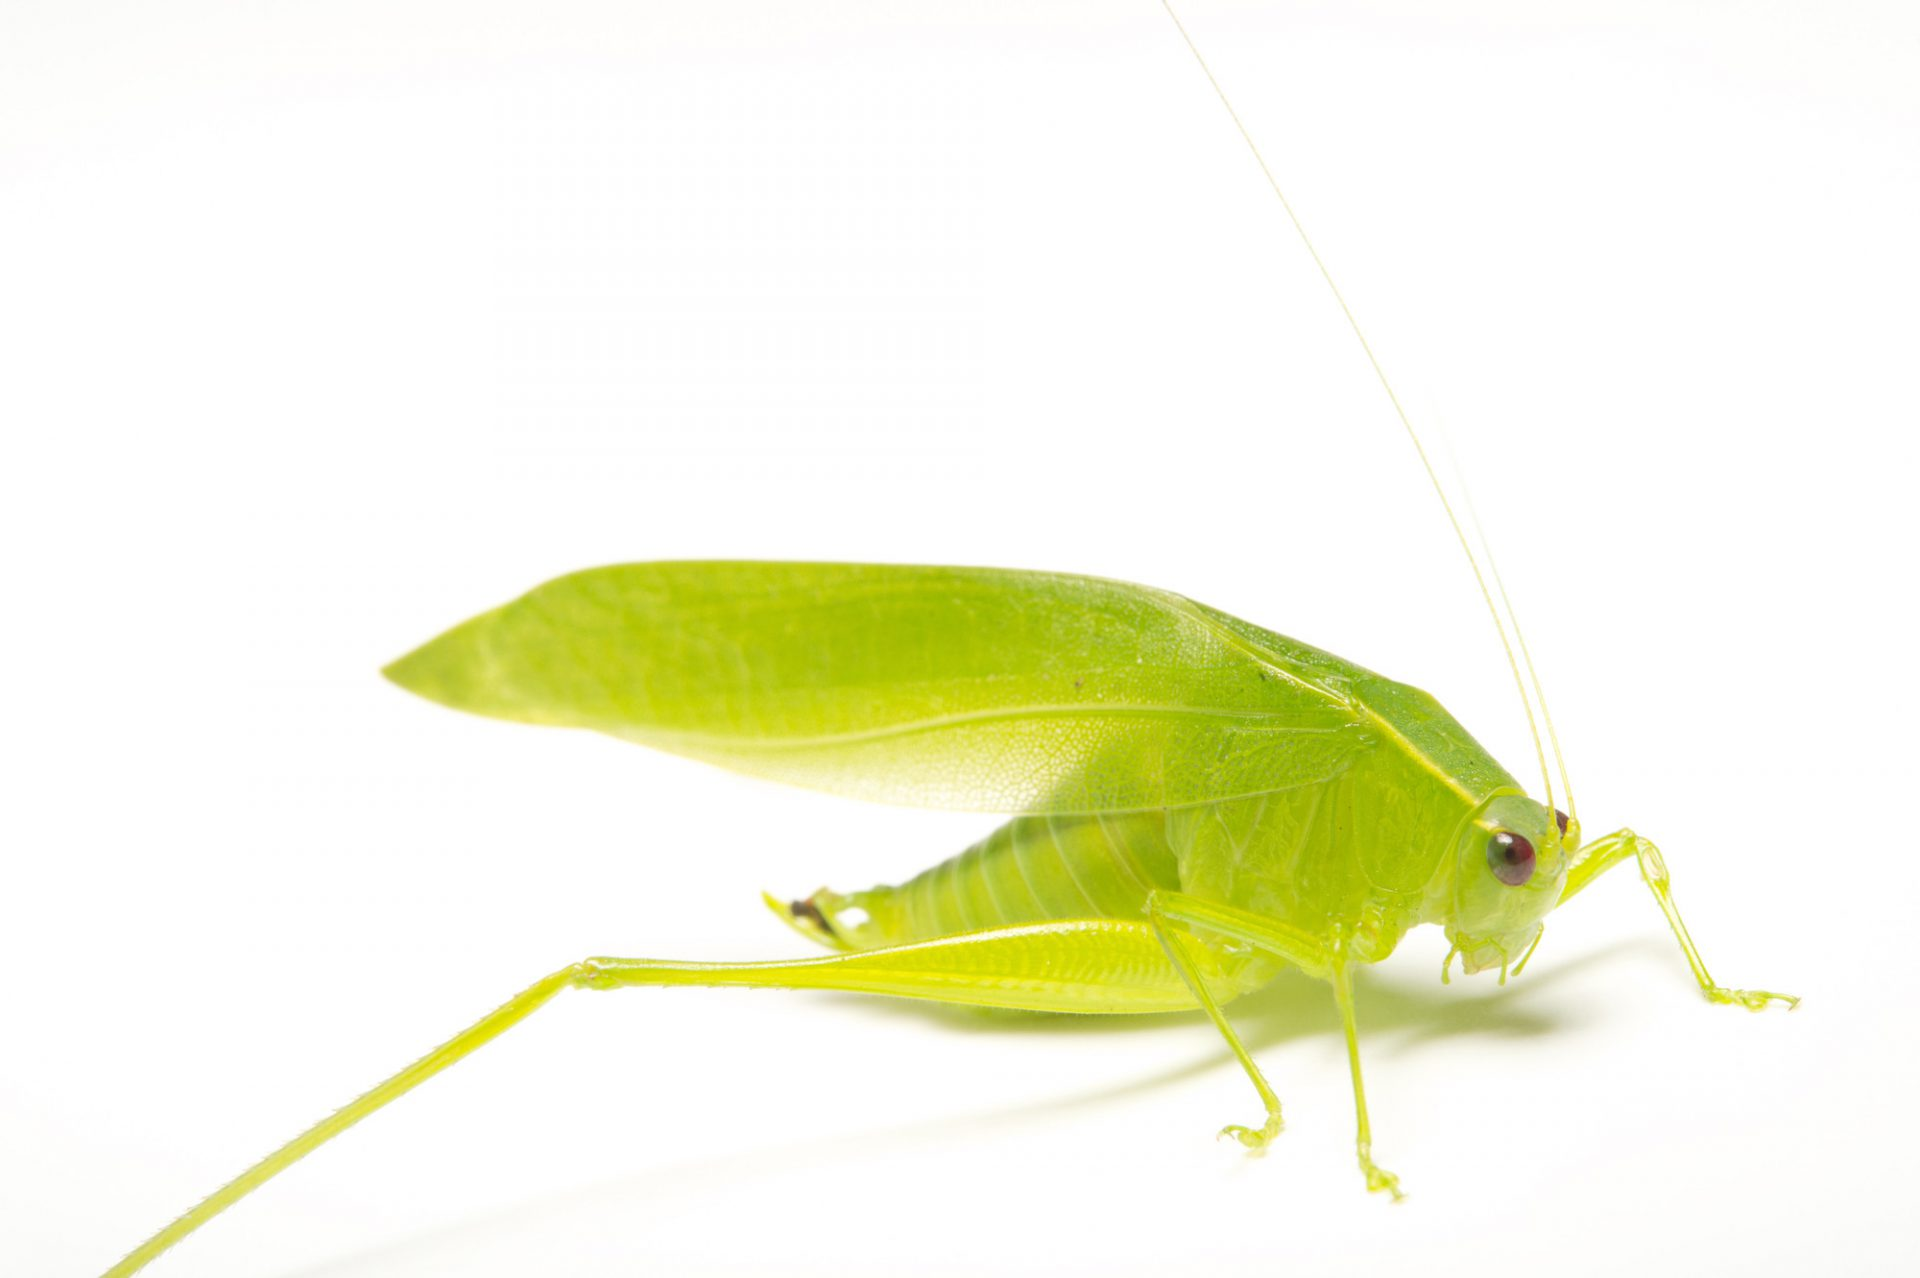 Picture of a male katydid (Chloroscirtus discocercus), which was caught in the wild in Gamboa, Panama.